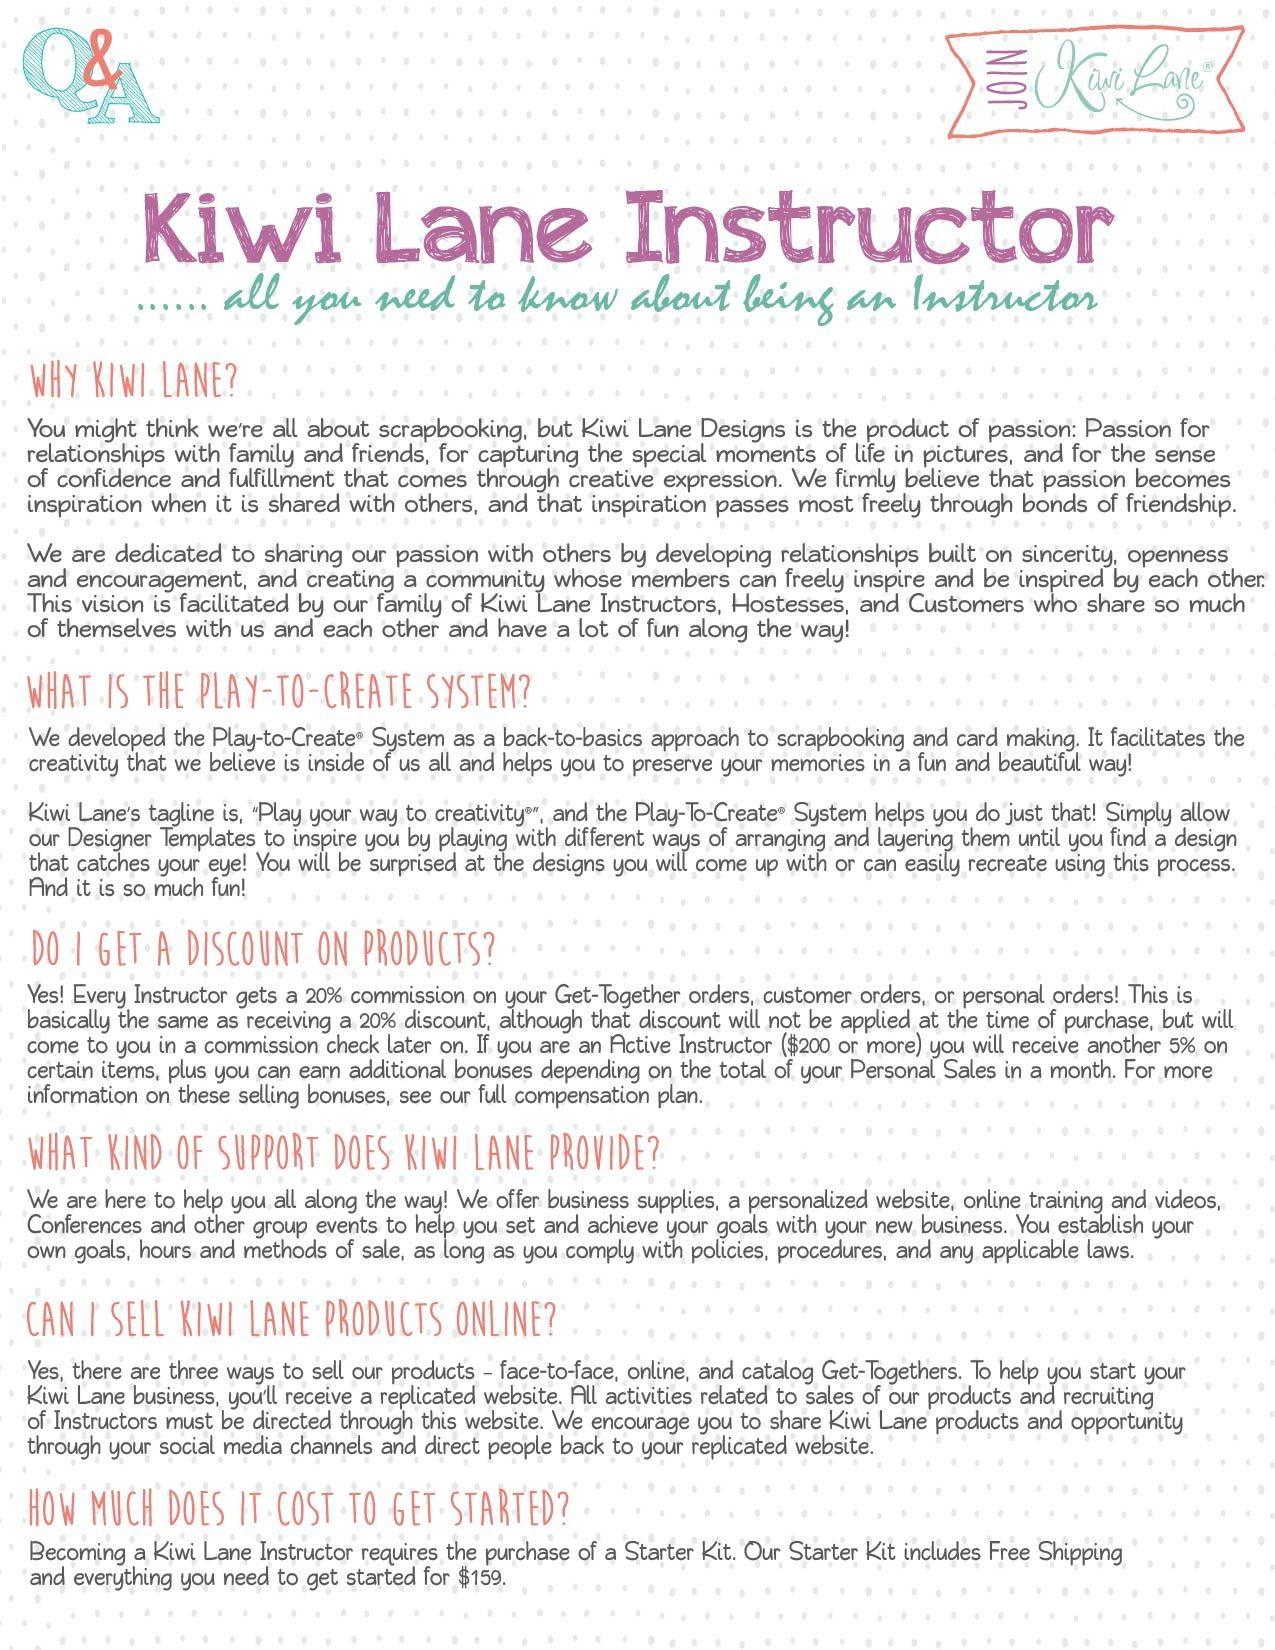 Kiwi Lane Instructor All You Need To Know About Being An